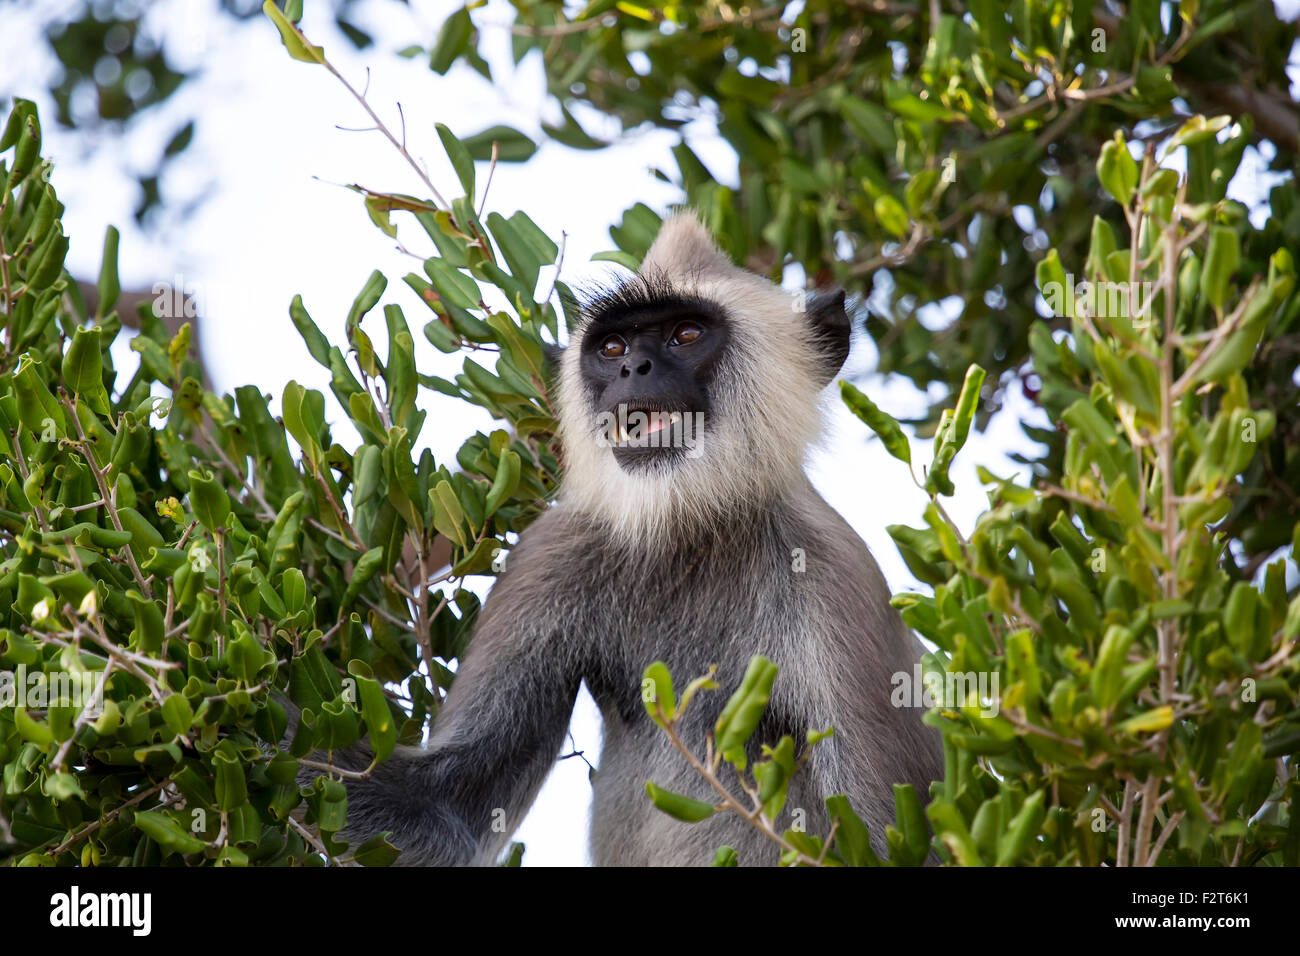 Gray langur in a tree. - Stock Image